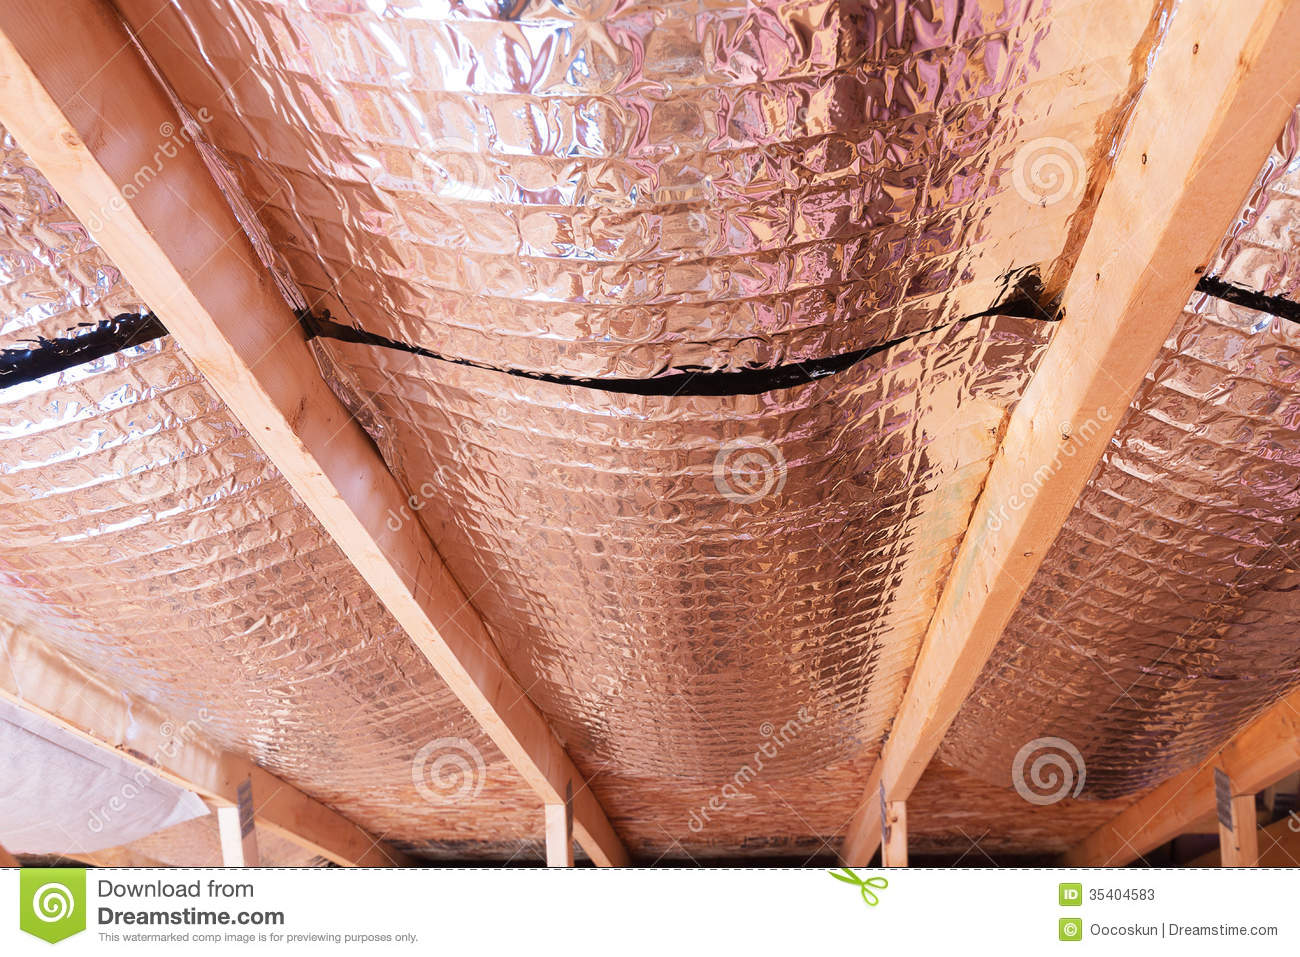 reflective radiant heat barriers between attic joists used as ba stock photos image 35404583. Black Bedroom Furniture Sets. Home Design Ideas